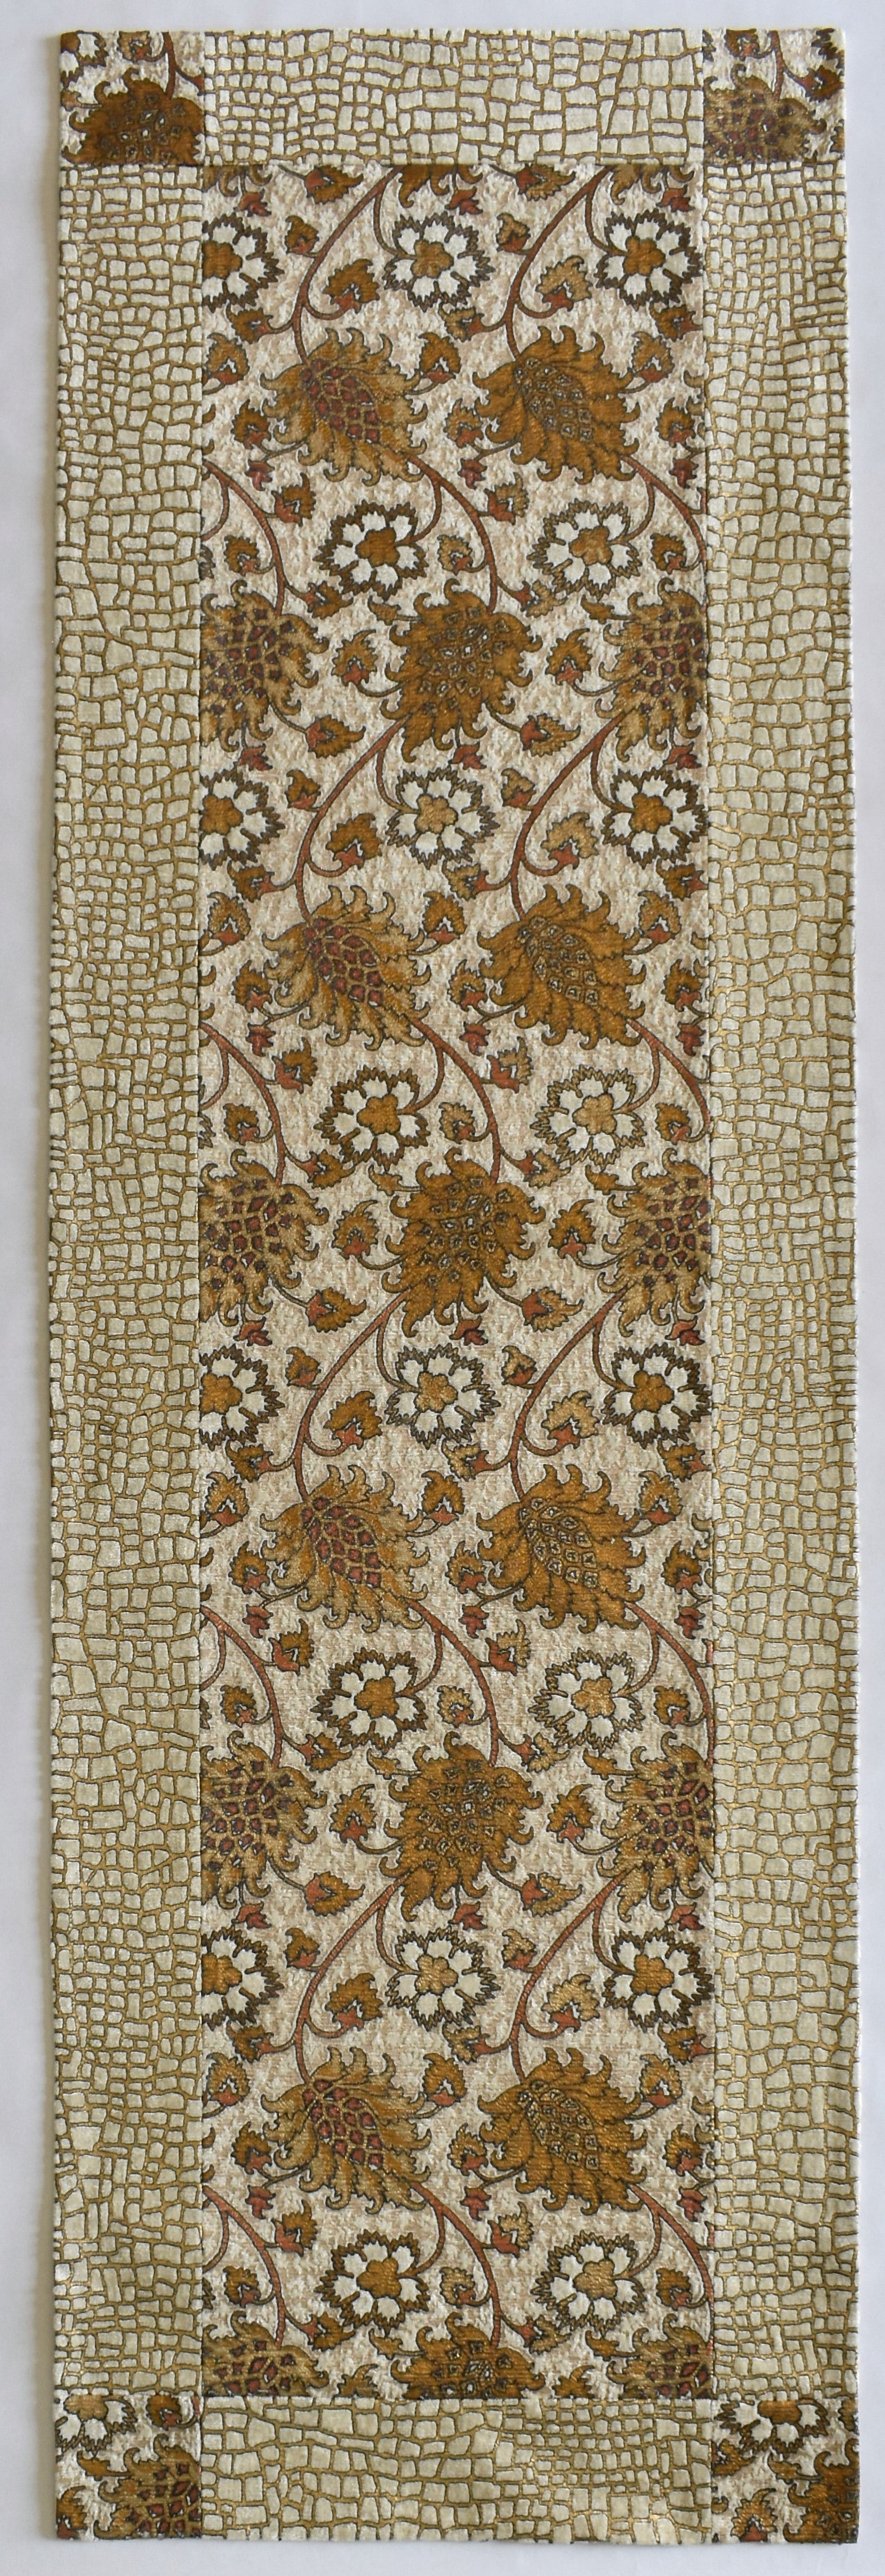 White & Gold Floral Design - Wall Hanging from Venetia Studium - Exquisiti